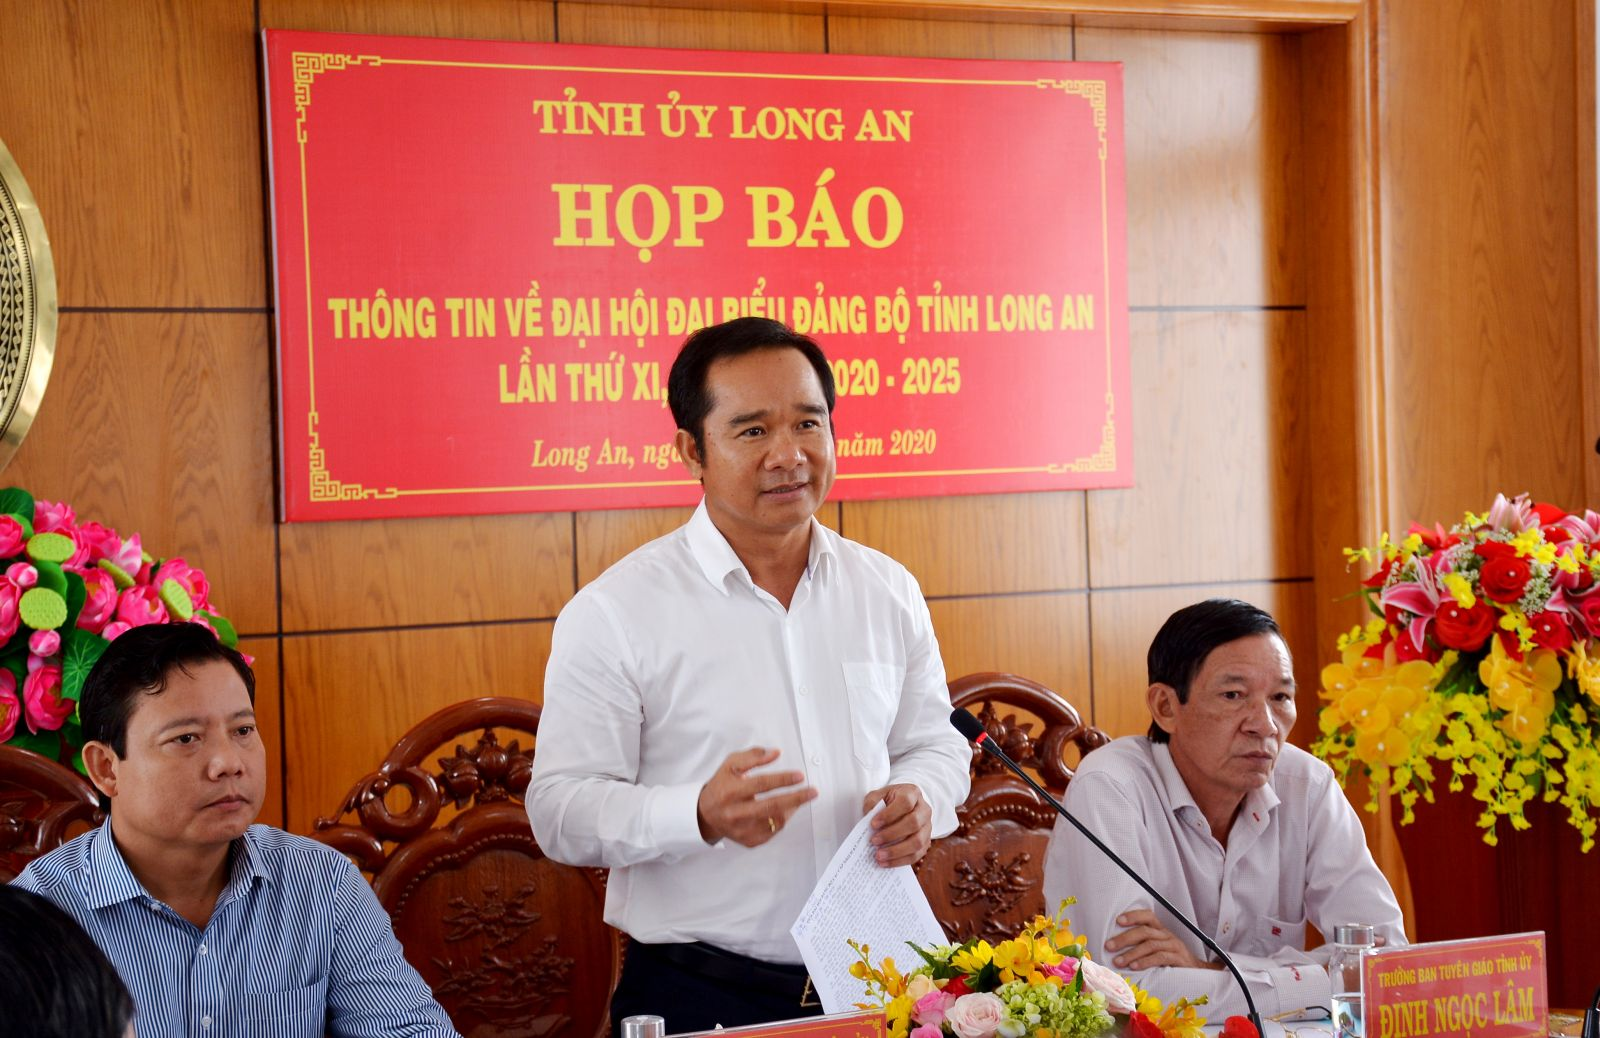 Standing Deputy Secretary of the Provincial Party Committee - Nguyen Van Duoc speaks at the press conference